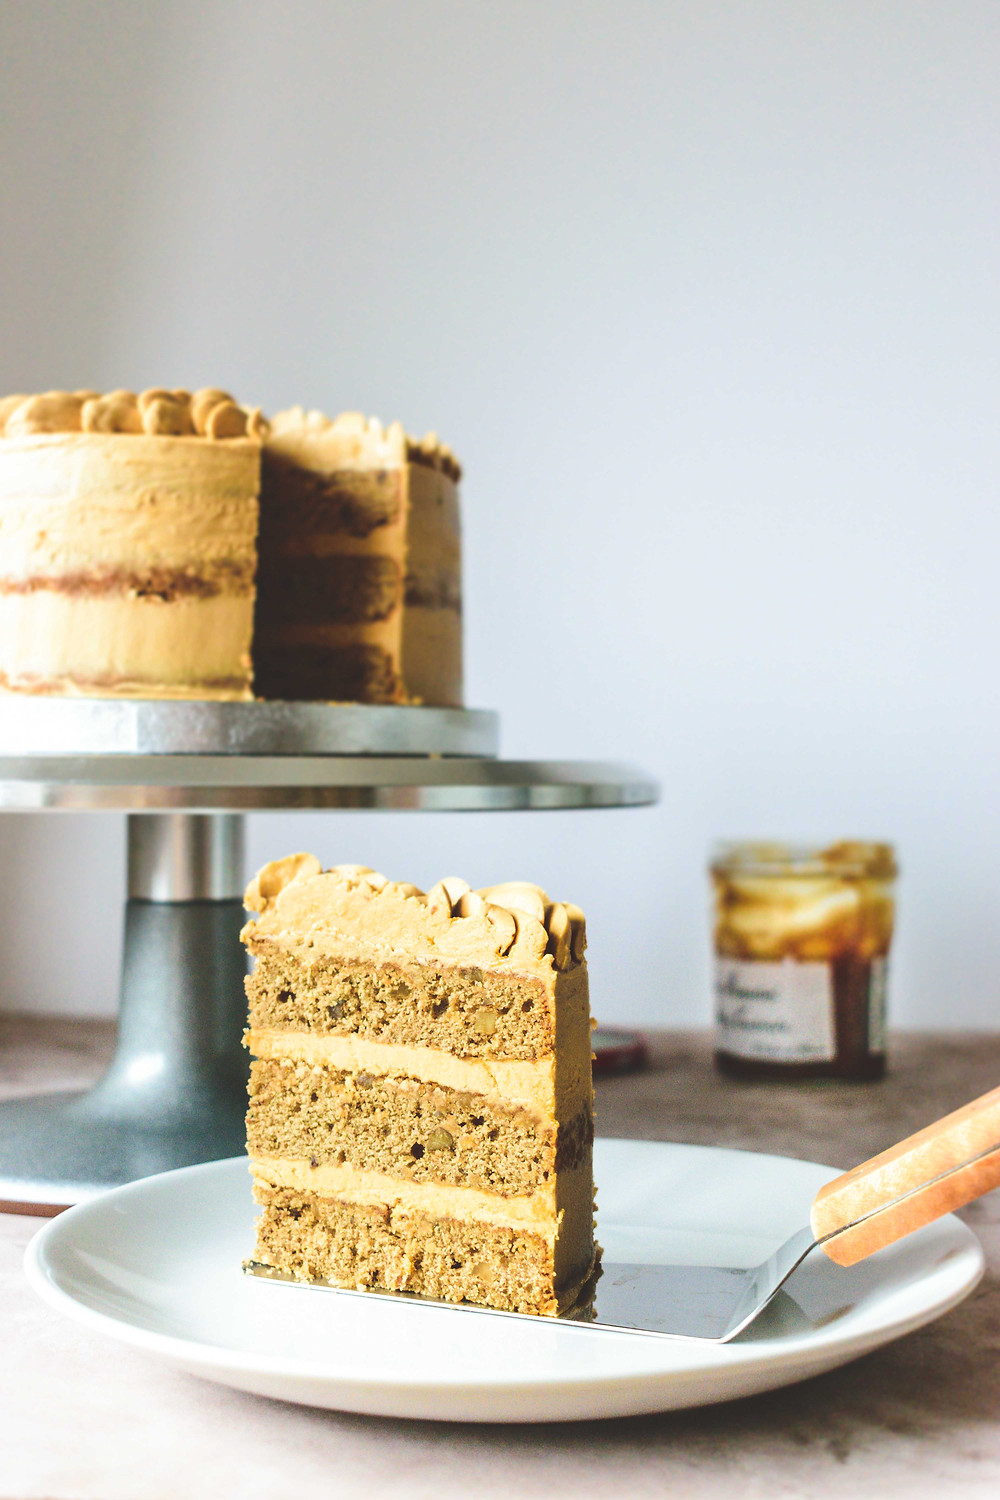 Coffee & Walnut Cake with Coffee-Caramel Buttercream (Gluten-Free)Coffee & Walnut Cake with Coffee-Caramel Buttercream (Gluten-Free)